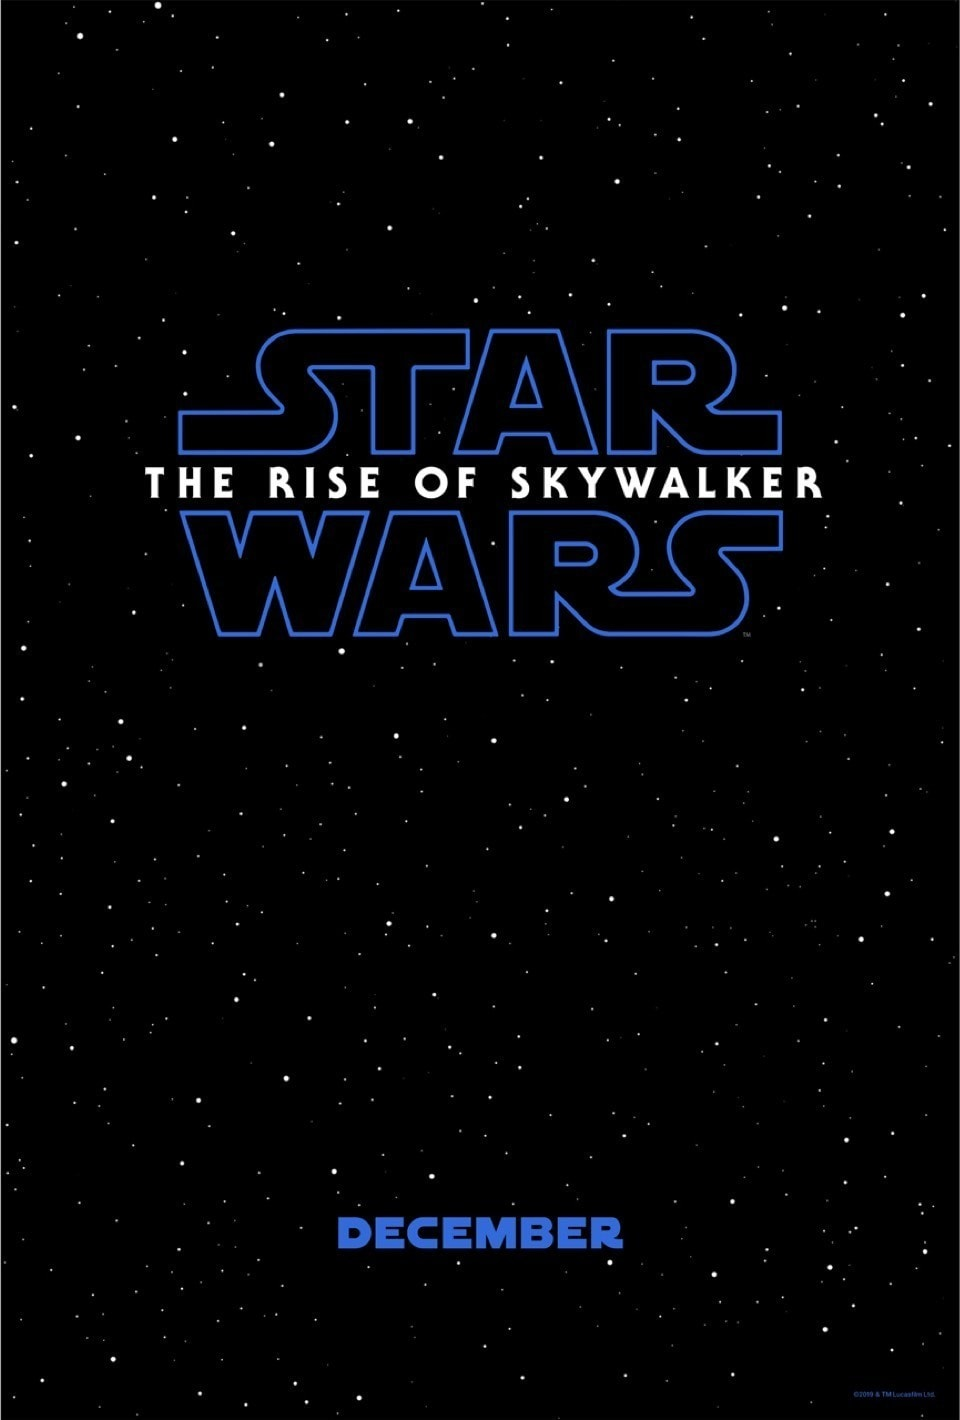 Poster featuring a black sky with white stars and the Star Wars: The Rise of Skywalker logo